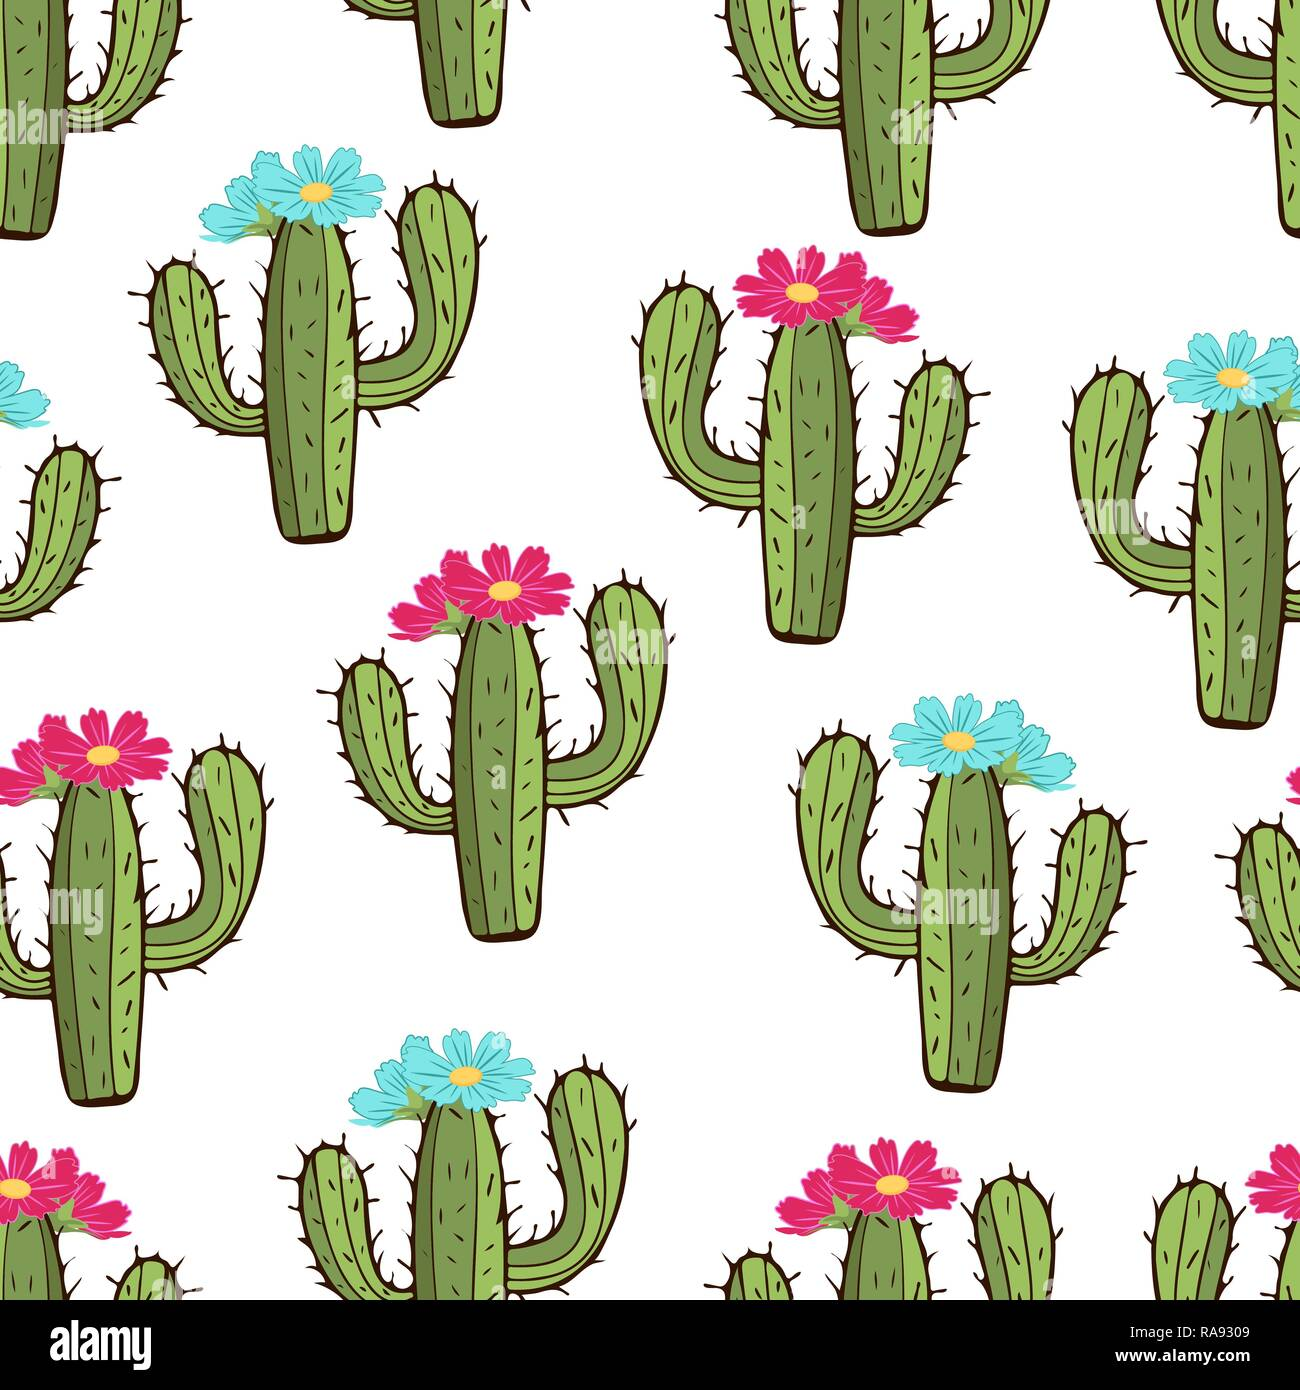 Blooming cactus seamless pattern hand drawing vector illustration painted green peyote with spikes and pink and blue flower buds on white backgroun